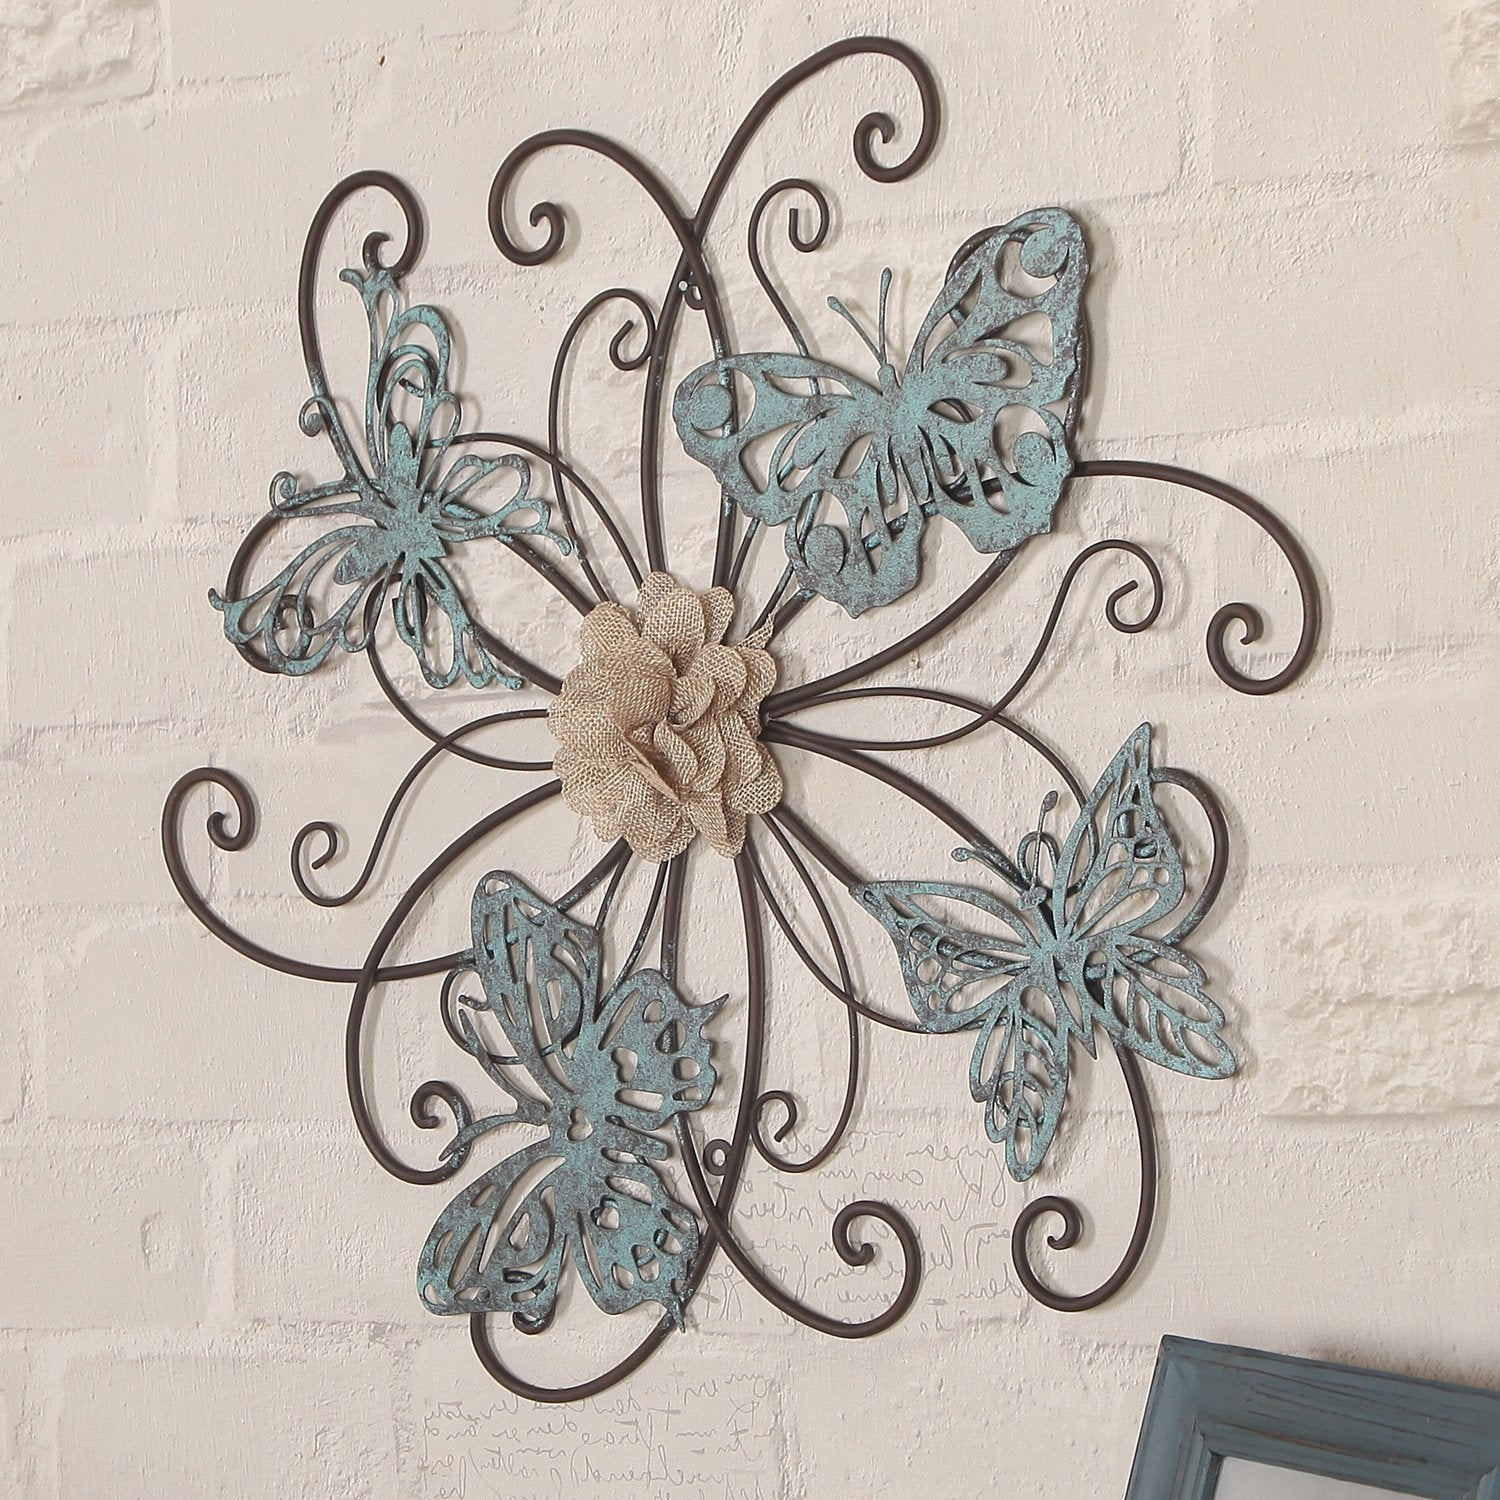 Shop Adeco Flower And Butterfly Urban Design Metal Wall Decor For With Widely Used Flower Urban Design Metal Wall Decor (View 17 of 20)